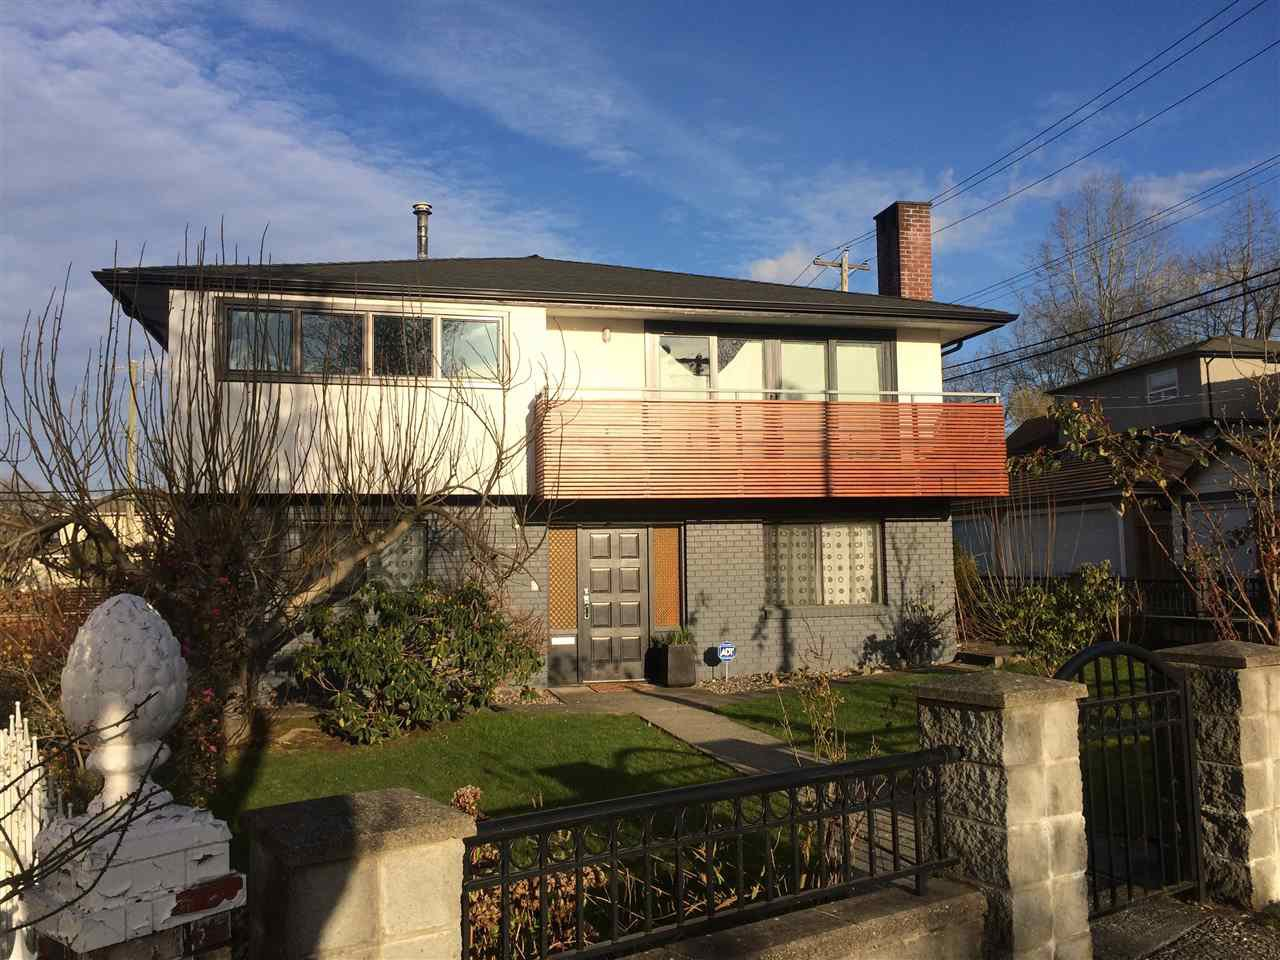 Main Photo: 3579 ANZIO Drive in Vancouver: Renfrew Heights House for sale (Vancouver East)  : MLS®# R2255770